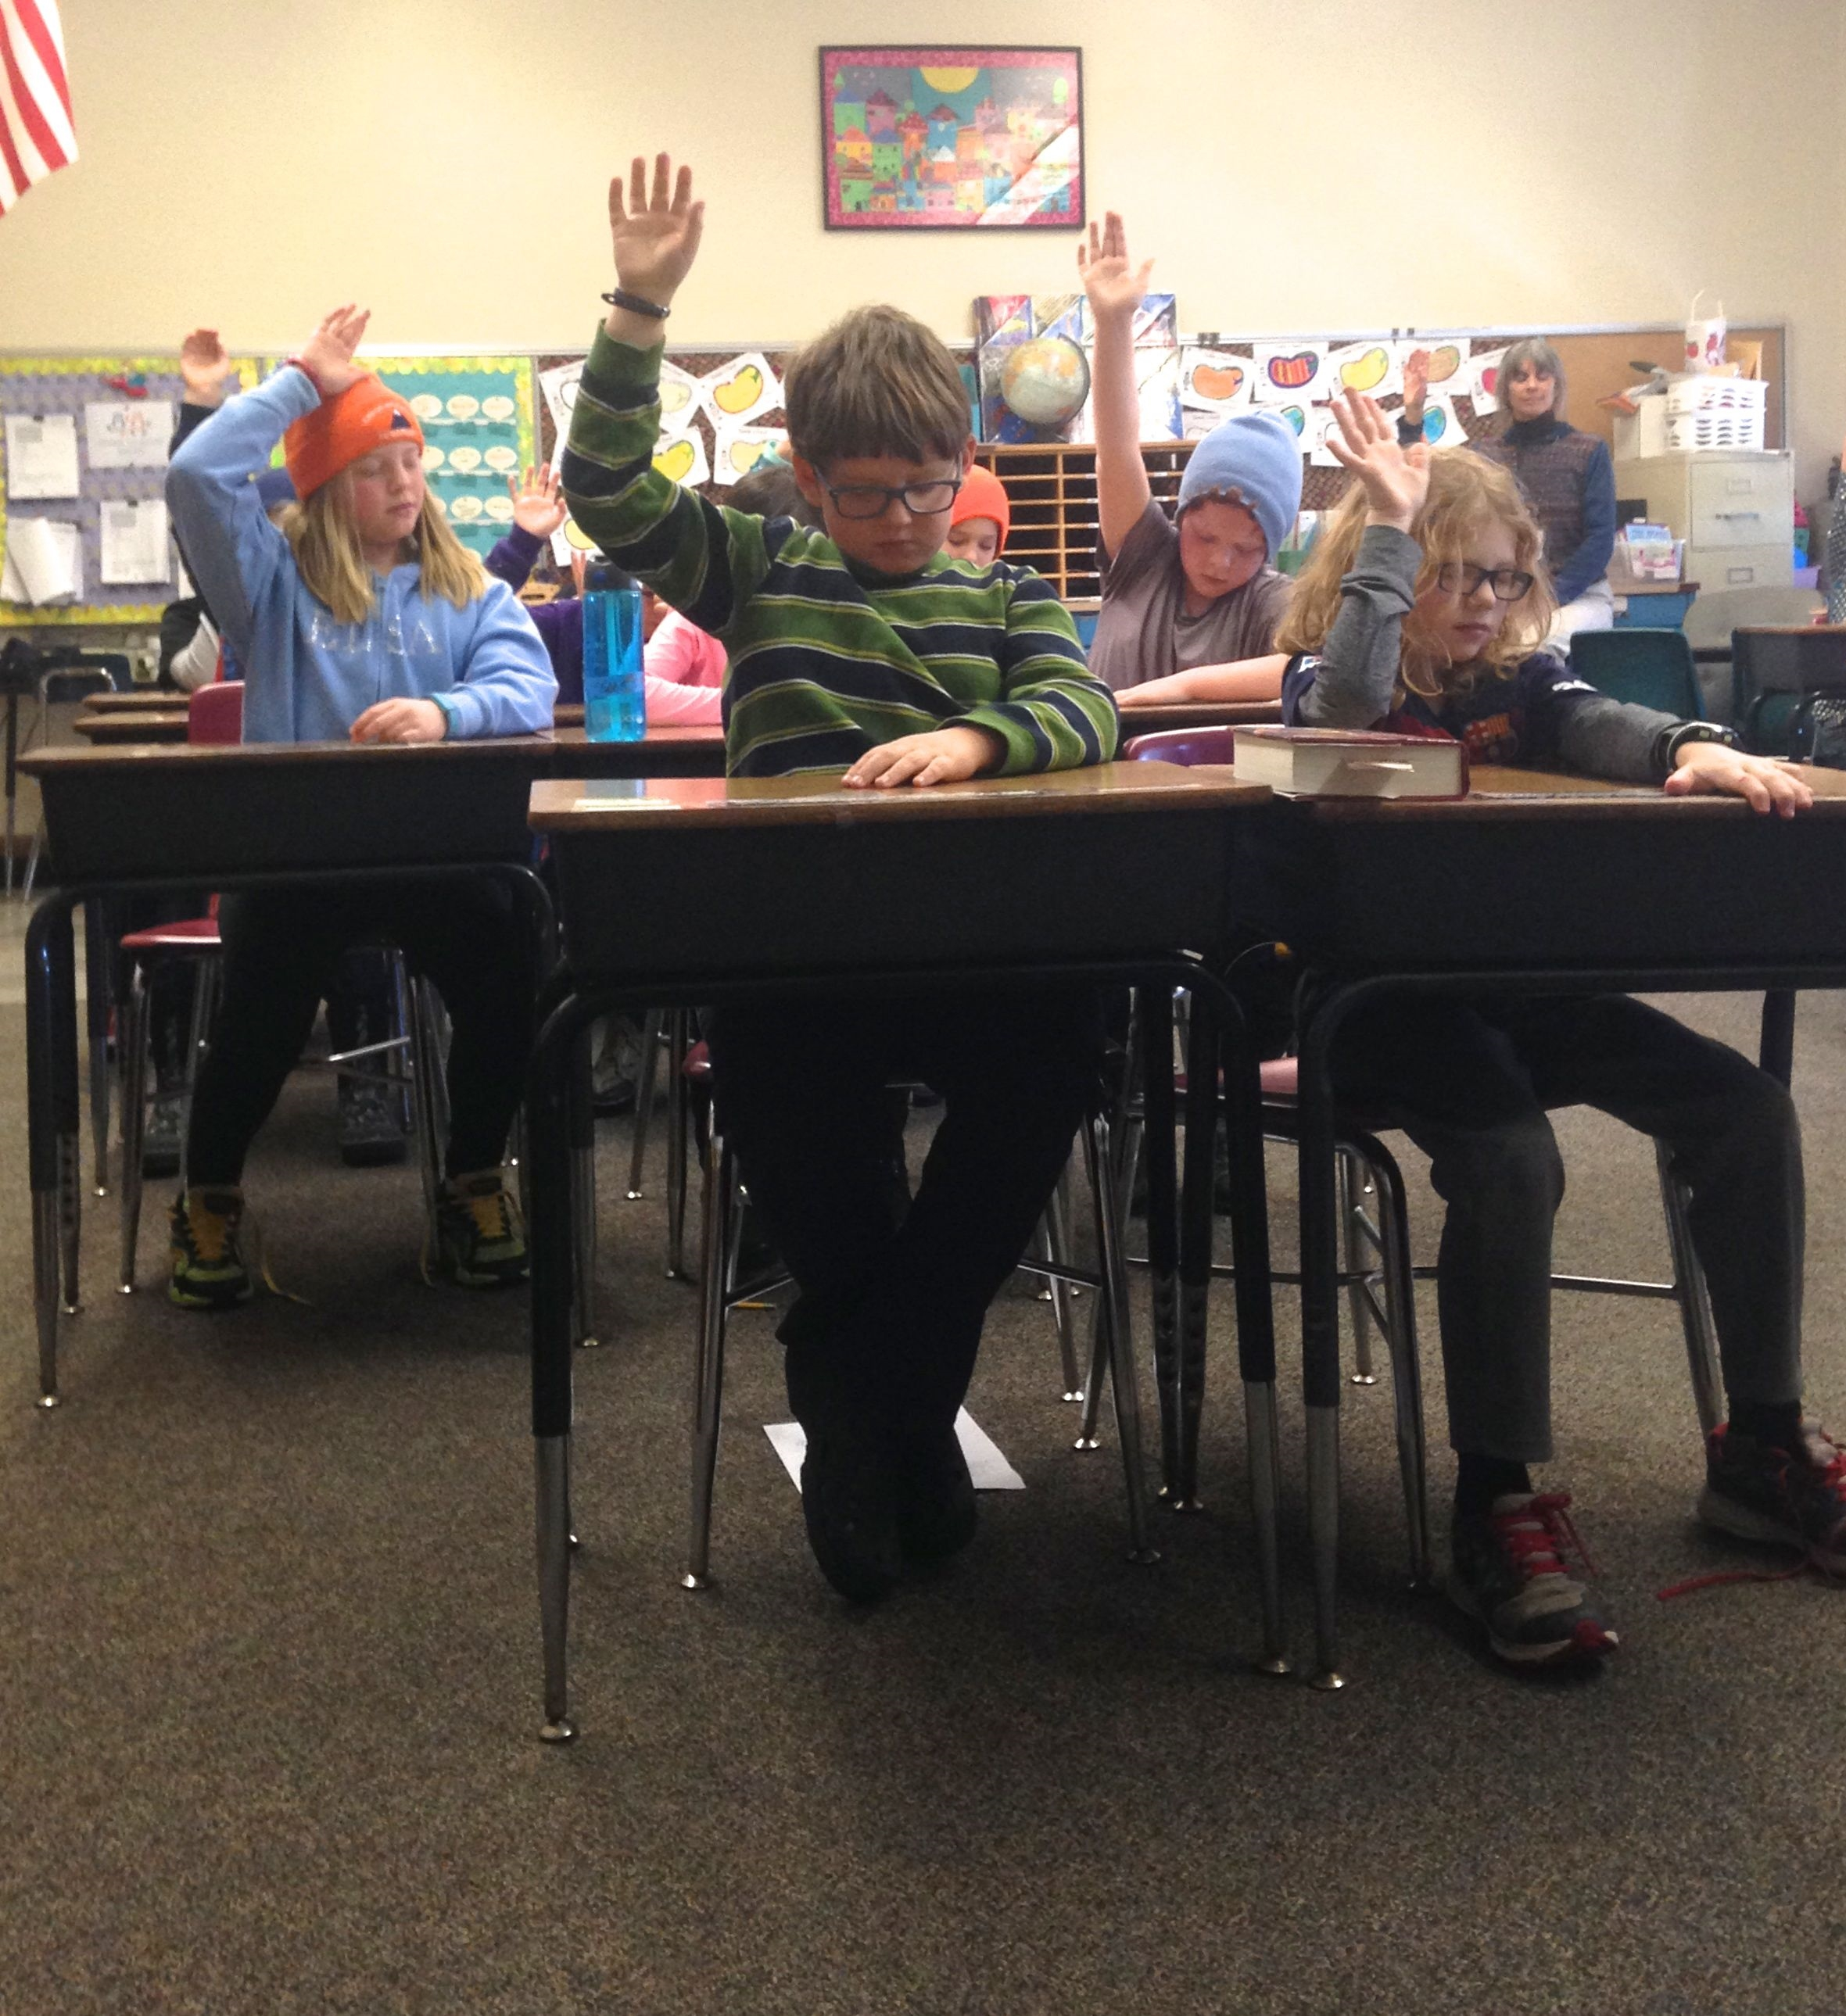 Students raise their hand when they can no longer hear the sound of the bell.